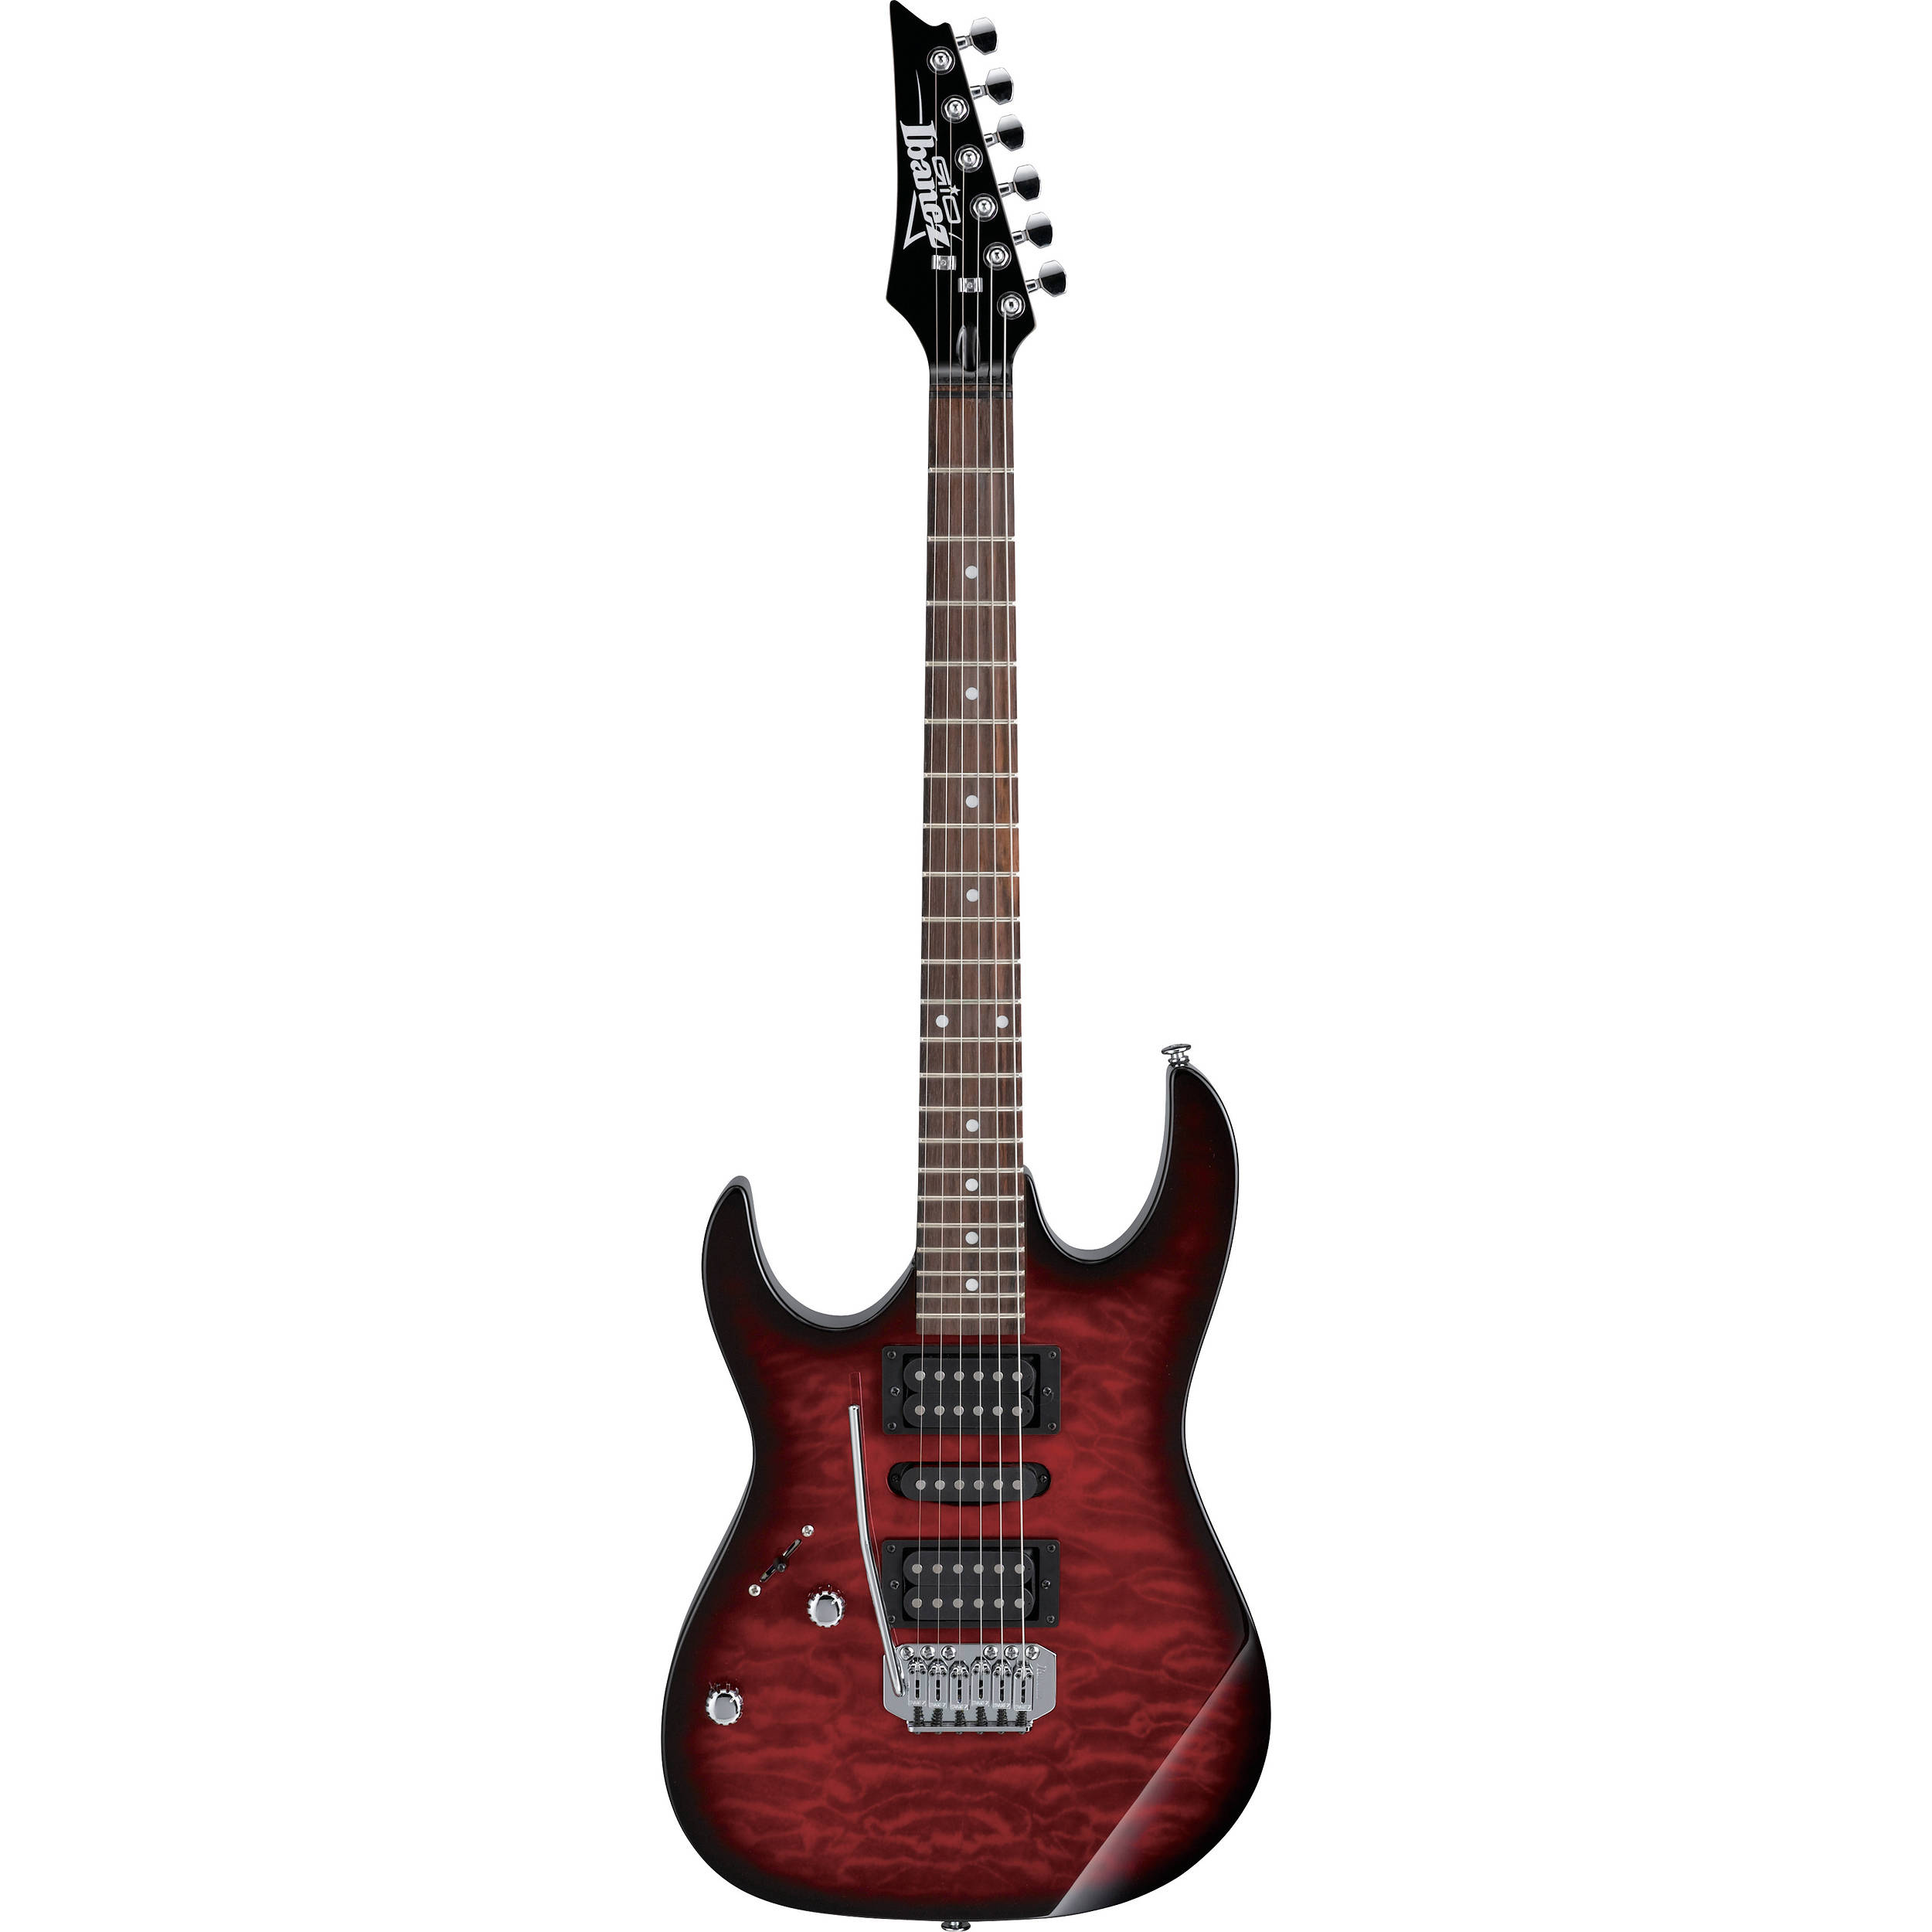 ibanez grx70qal gio series electric guitar grx70qatrbl b h photo. Black Bedroom Furniture Sets. Home Design Ideas